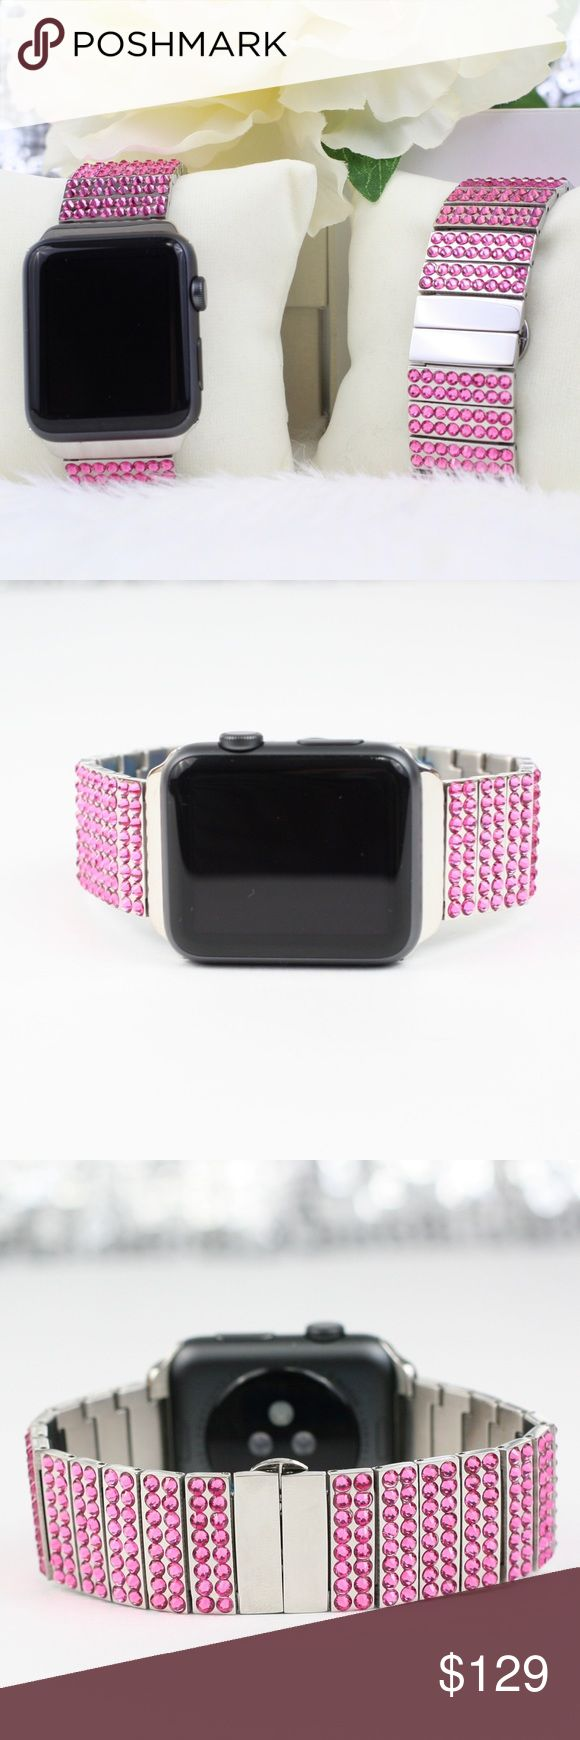 "Apple Watch Band Jeweled Swarovski Stainless Pink Luxurious Jeweled Apple Watch Band, pink Swarovski Crystals Compatible with Series 1 and Series 2. Available in 38mm or 42mm. Fits wrist sizes up to 8"". Links are removable to fit your wrist. Additional links can be ordered at an additional cost. Photos do not capture the brilliance on these Apple Watch bands. Ultimate Sparkle. Shining & bling. Xaltium Accessories Watches"